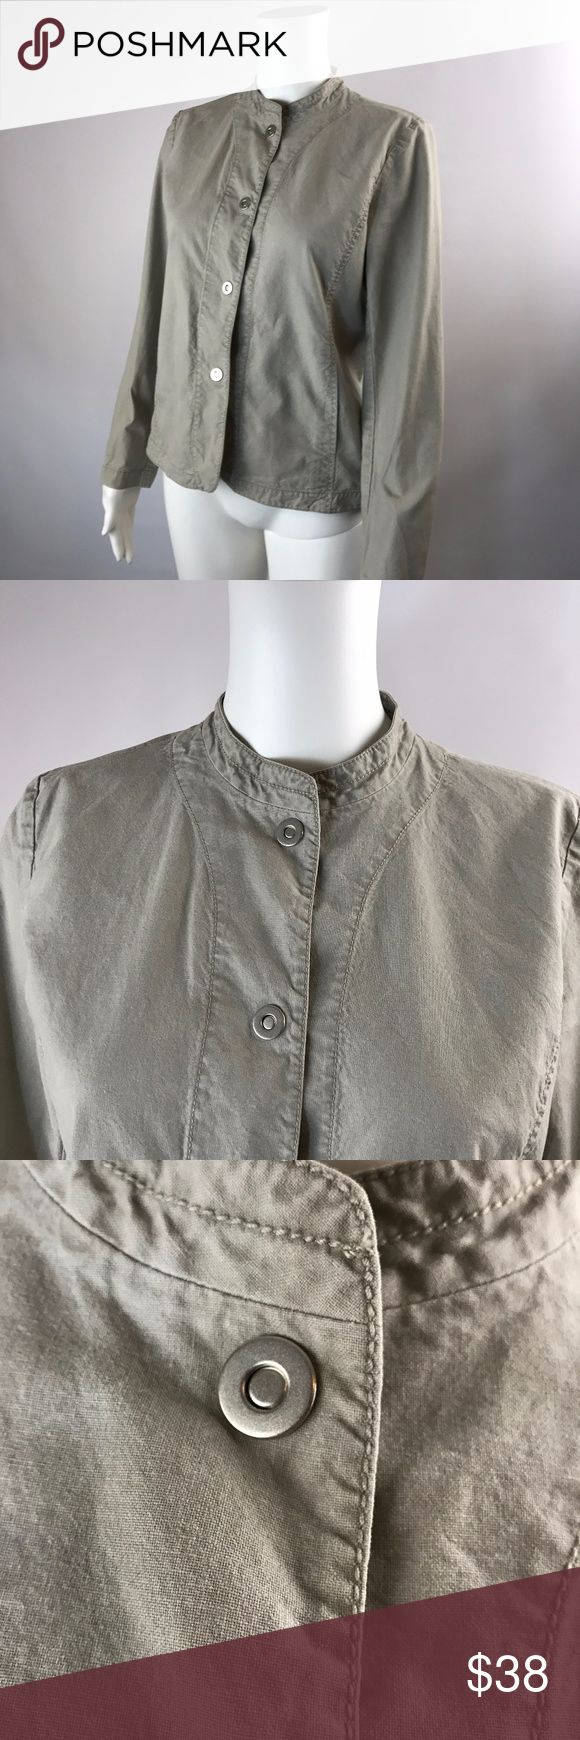 Eileen Fisher PS Cotton Twill Jacket Snap Up Eileen Fisher PS Cotton Twill Jacket Snap Up Semi Fitted BEIGE Lightweight EUC Pre-owned, no stains or defects Chest 36, Waist 32, Length 22 1/2 Eileen Fisher Jackets & Coats